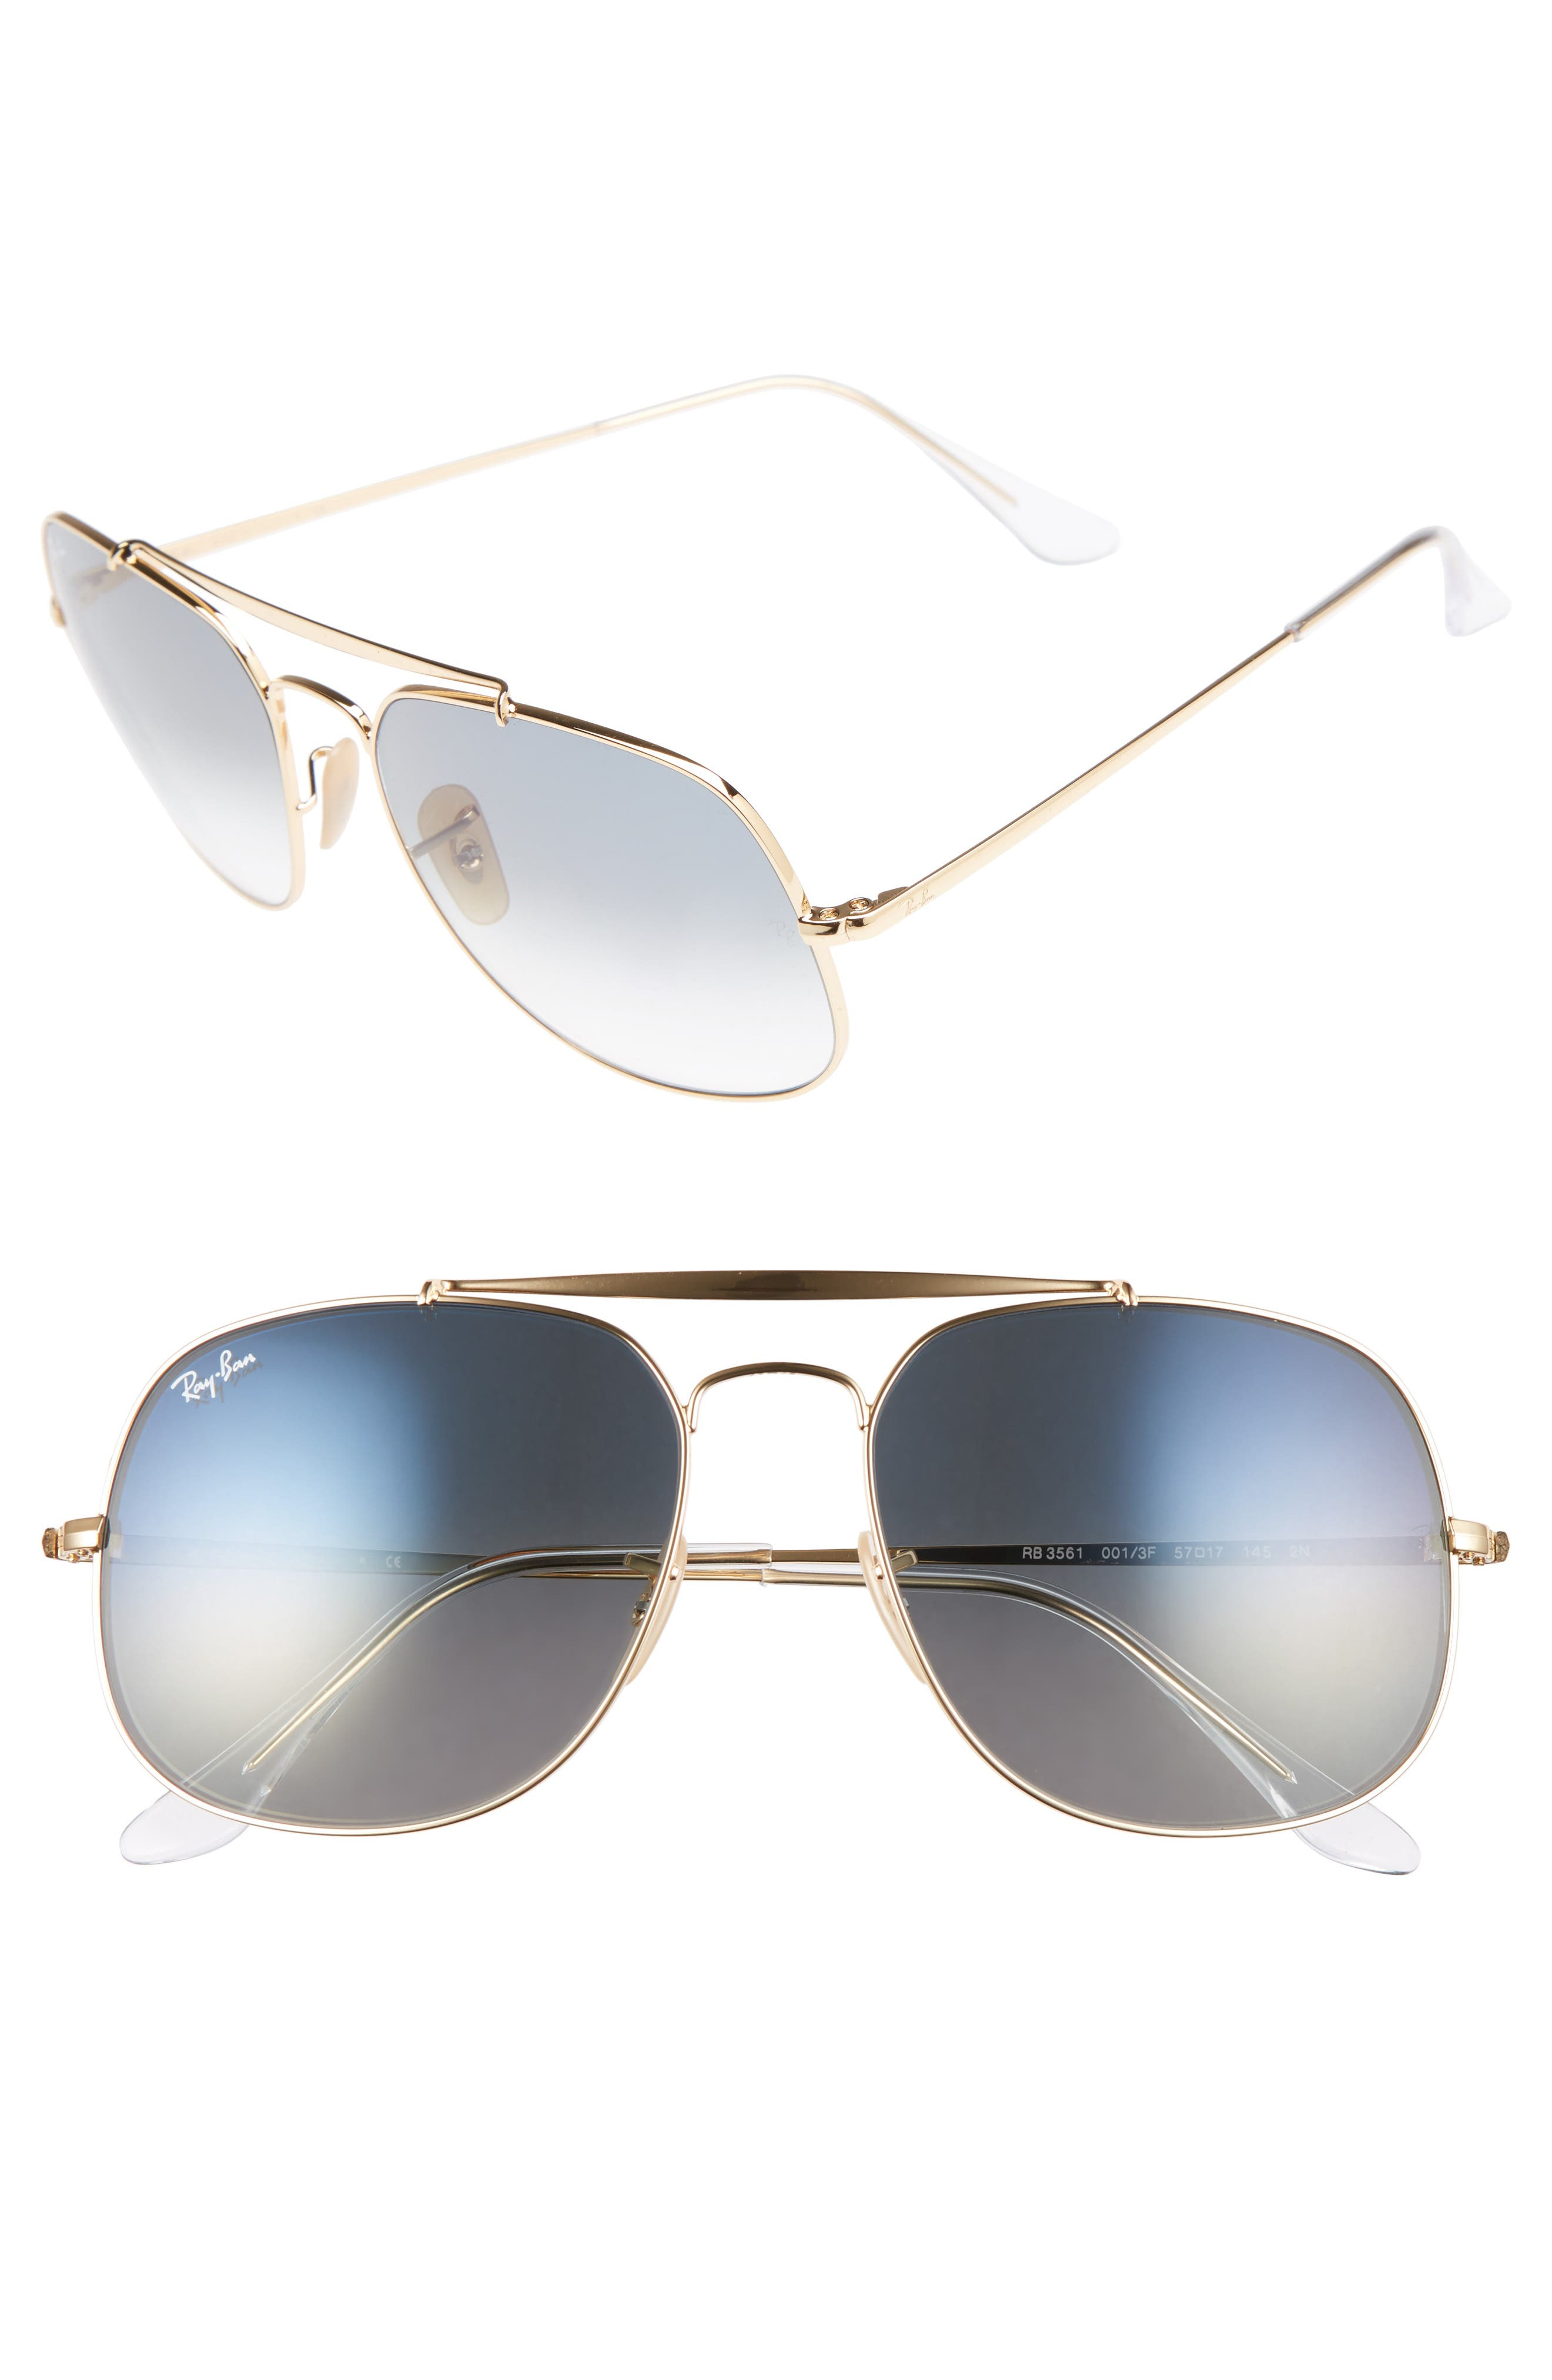 57mm Gradient Lens Square Aviator Sunglasses,                         Main,                         color, Gold/ Blue